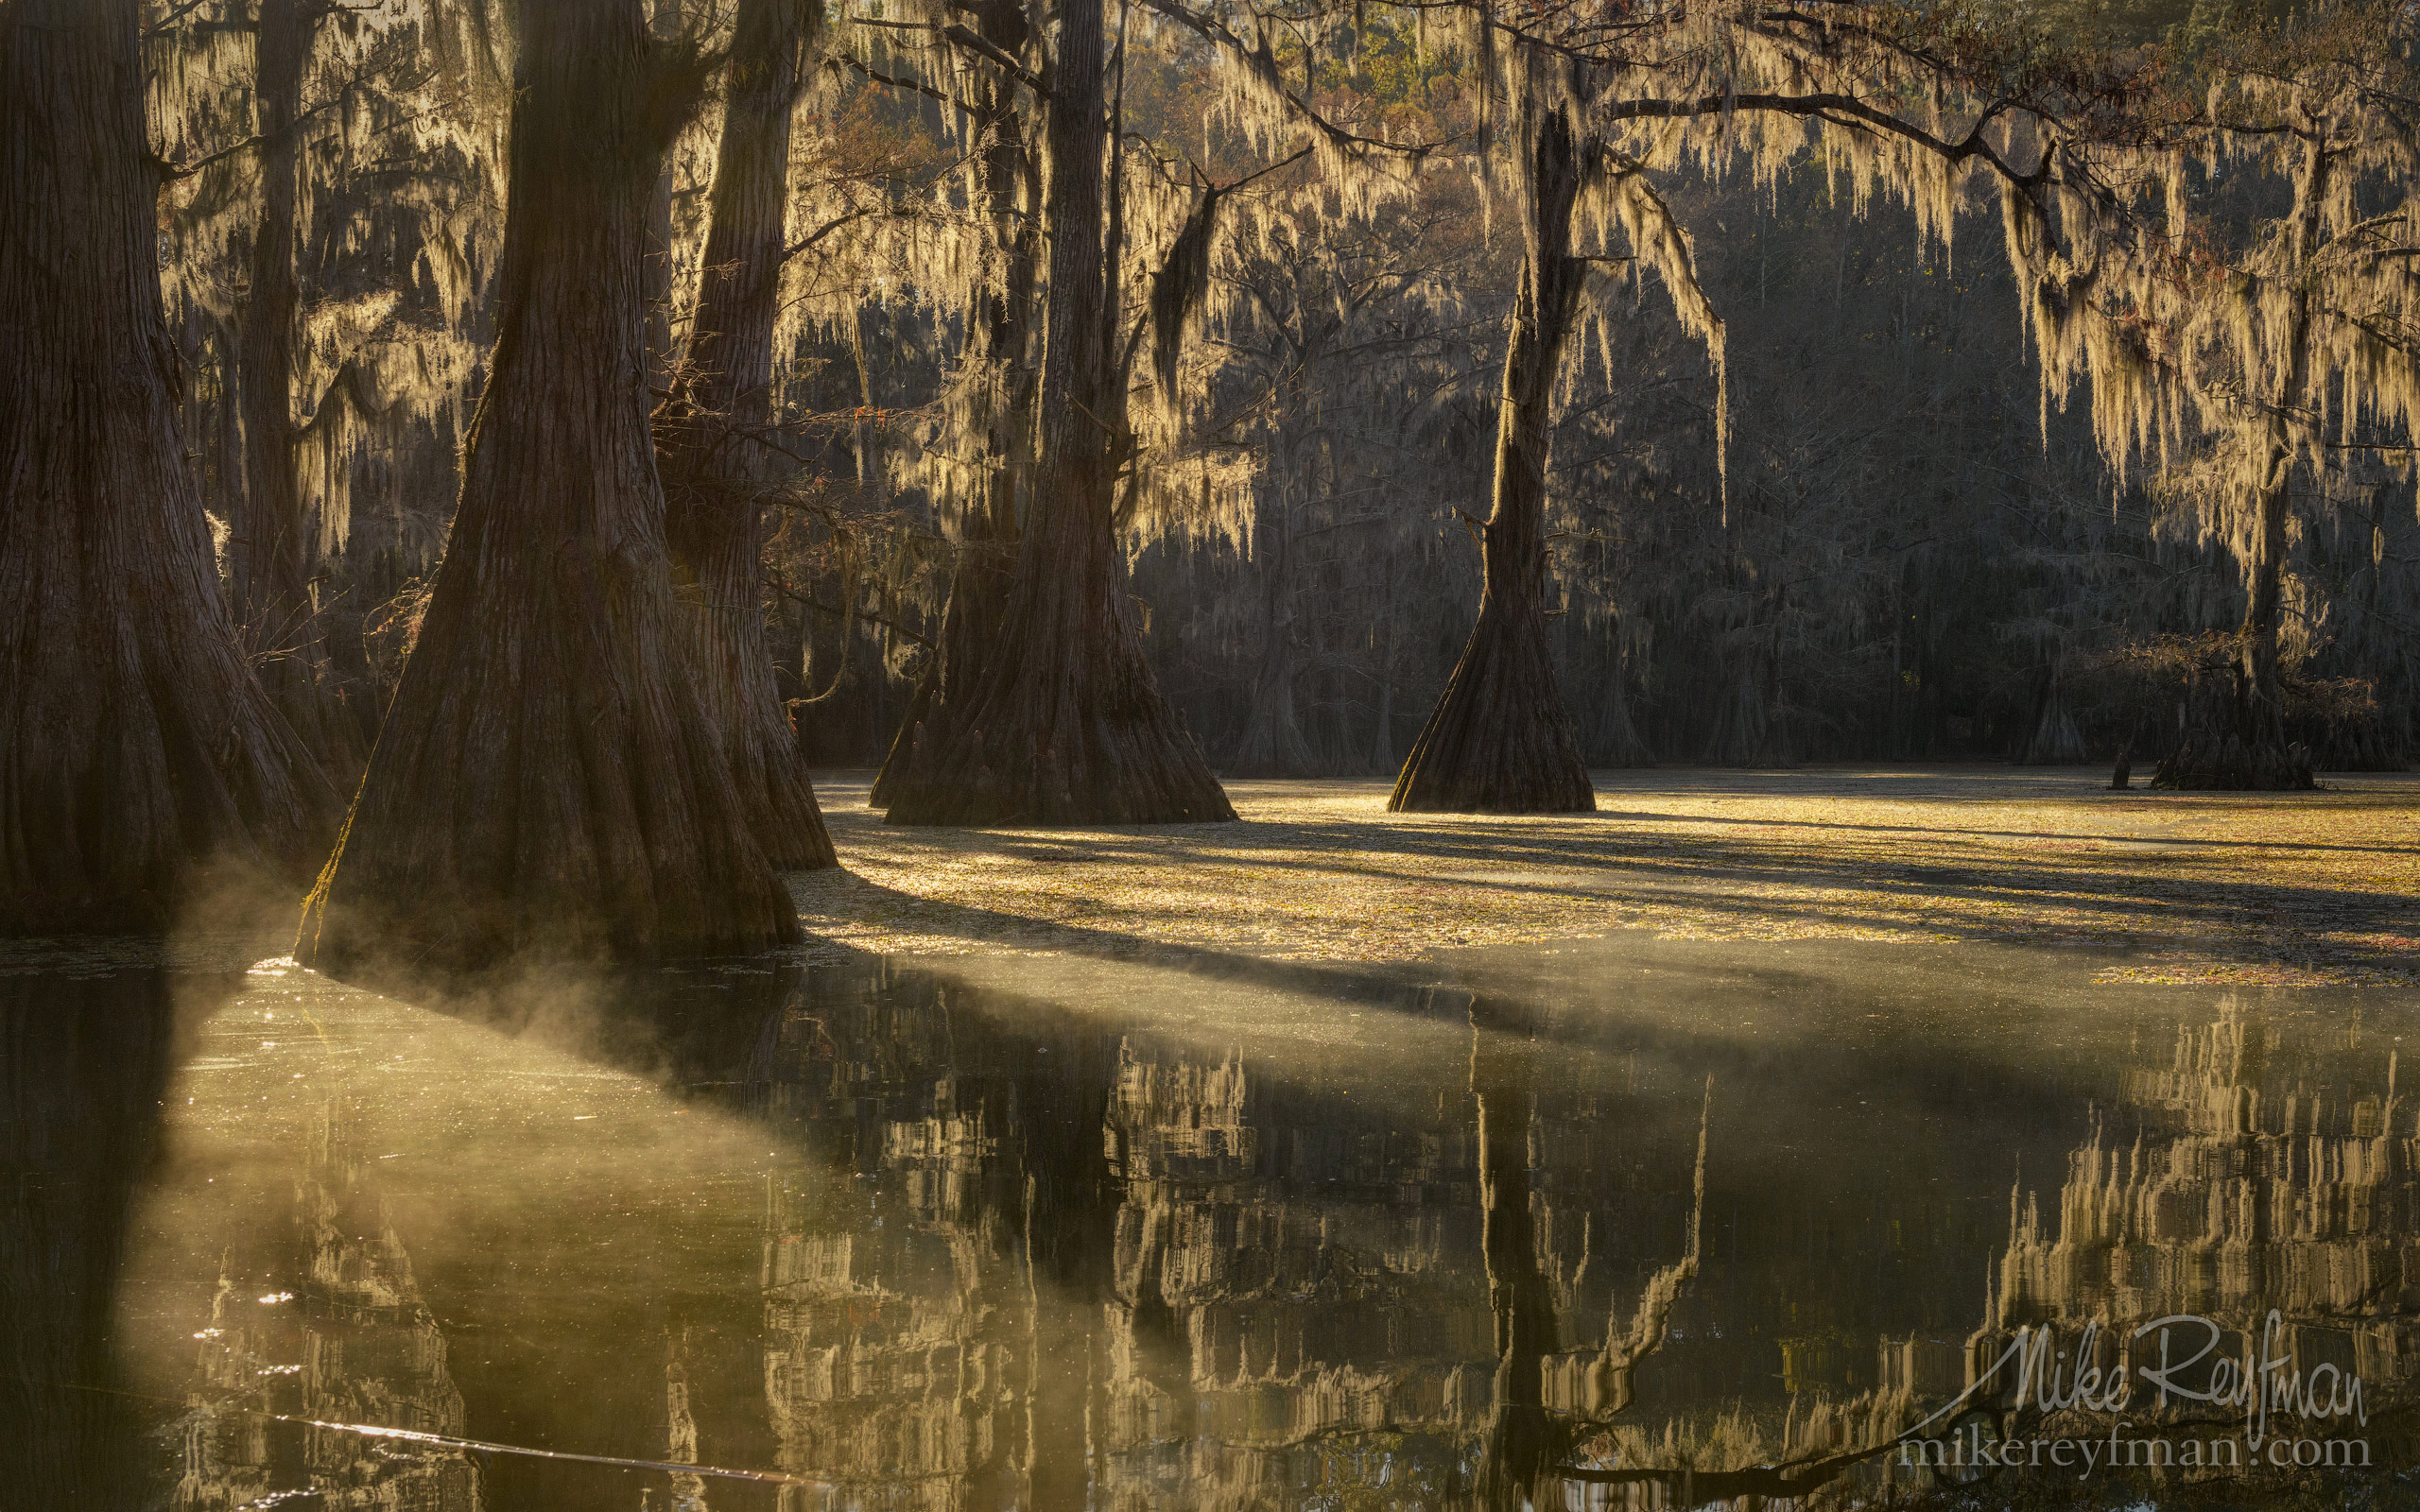 Bald Cypress trees in the swamp. Foggy morning on Caddo Lake, Texas, US 044-LT1-50A3671.jpg - Bold Cypress and Tupelo Trees in the swamps of Atchafalaya River Basin. Caddo, Martin and Fousse Lakes. Texas/Louisiana, USA. - Mike Reyfman Photography